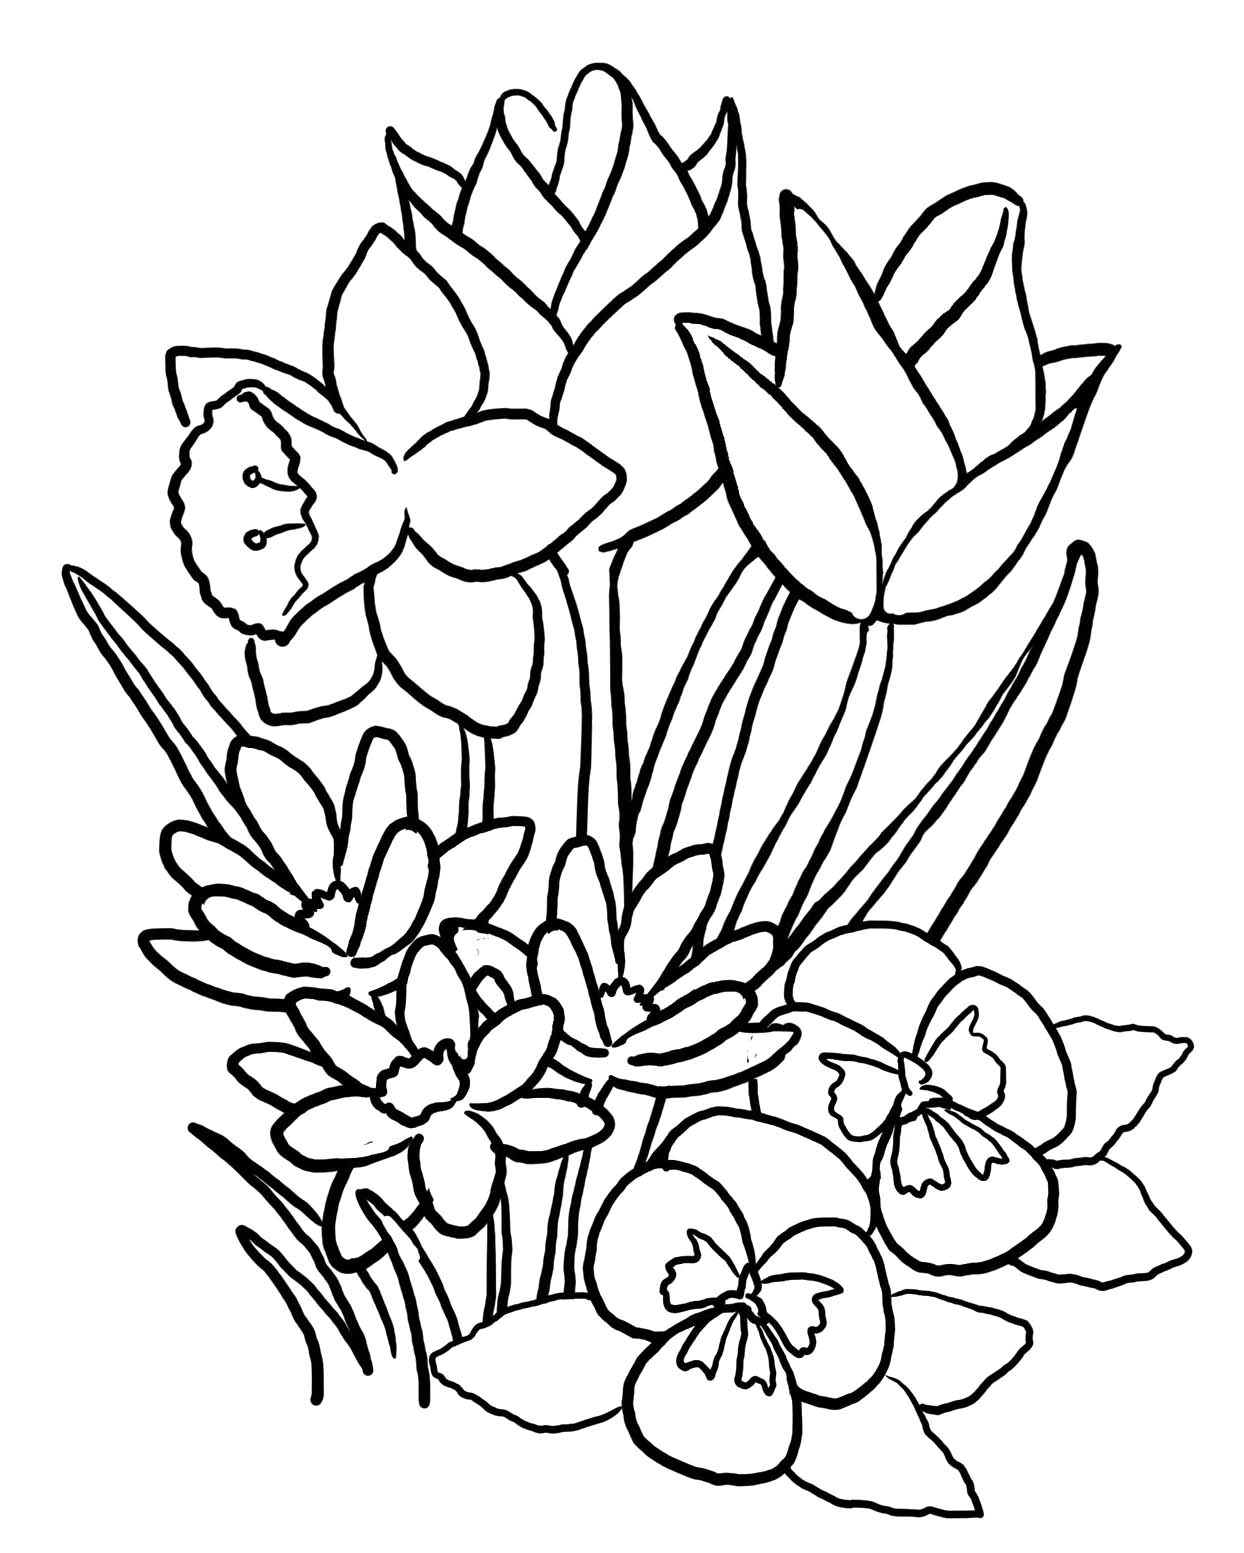 childrens coloring pages flowers free easy to print flower coloring pages tulamama flowers childrens pages coloring